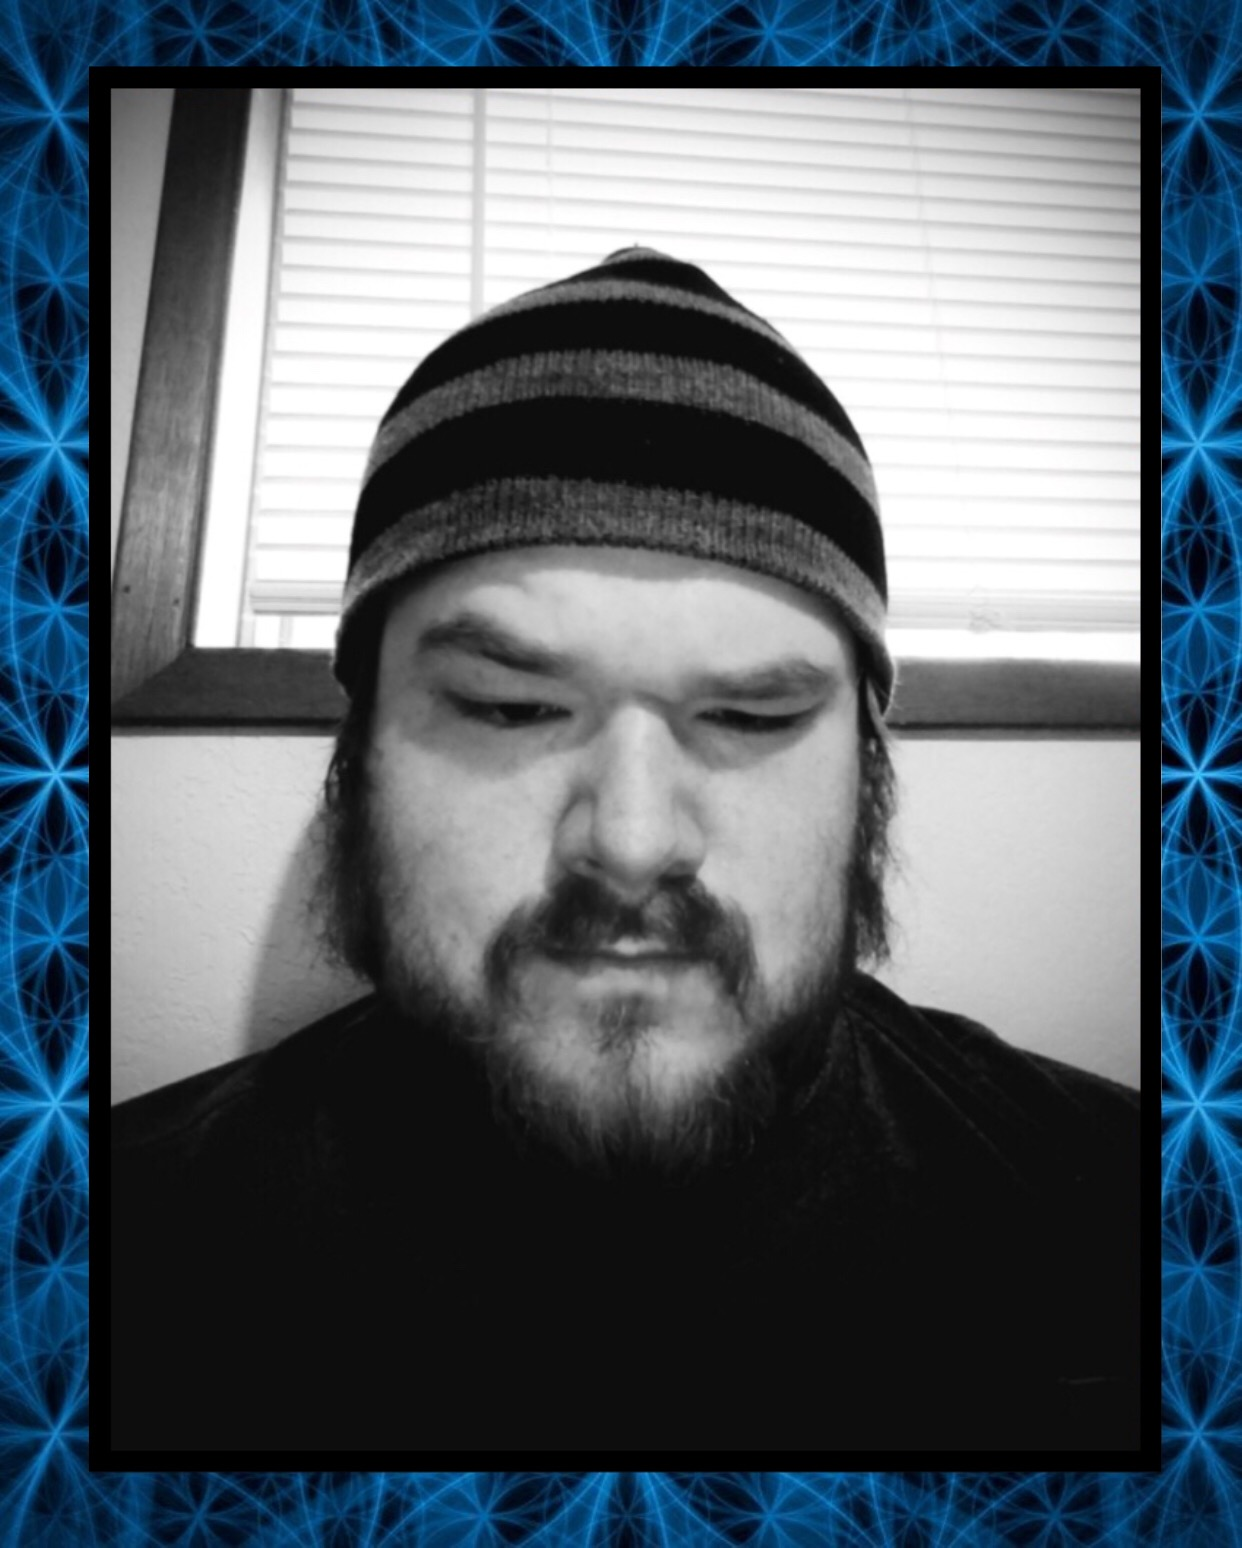 Nick Thomas - Host, Lead Research Specialist and Comic Book Historian, Lead PC and Table Top Division